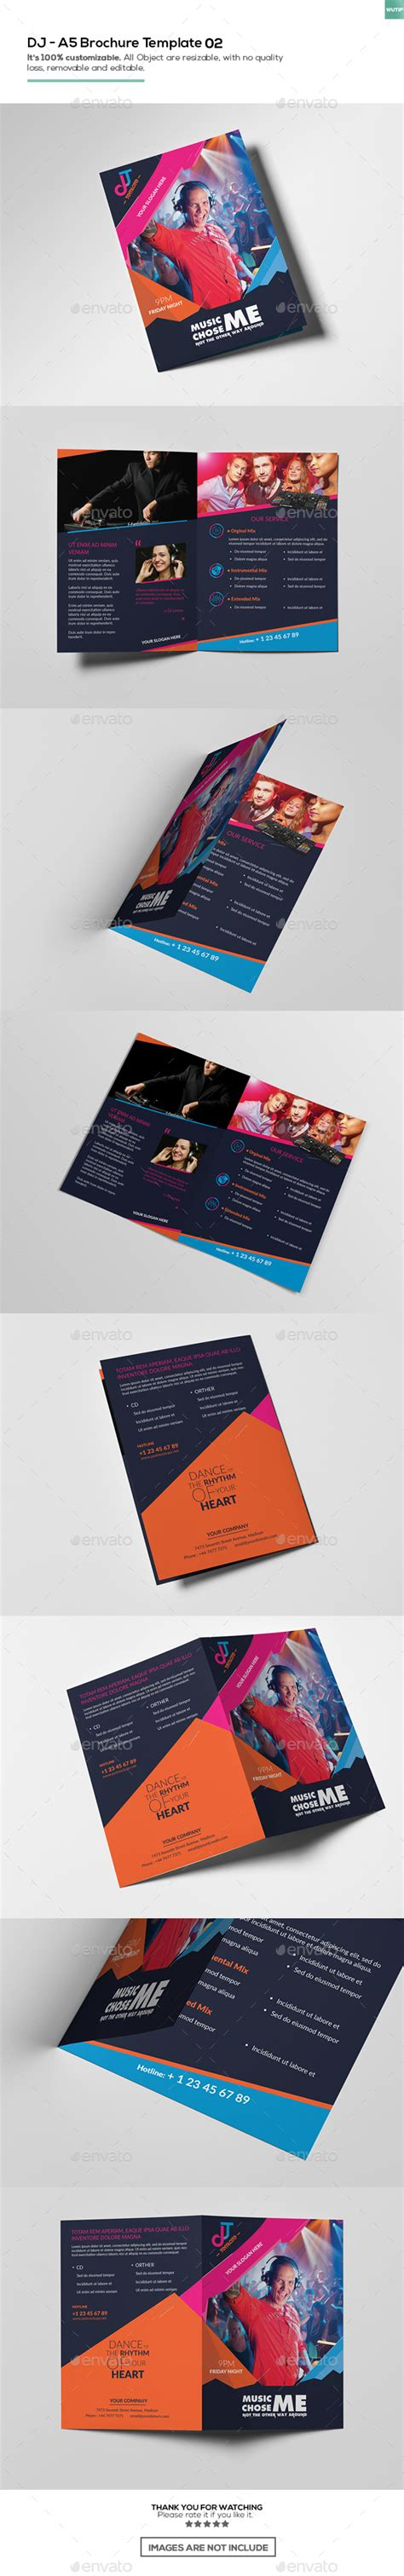 A5 Brochure Template by Dj A5 Brochure Template 02 By Wutip2 Graphicriver